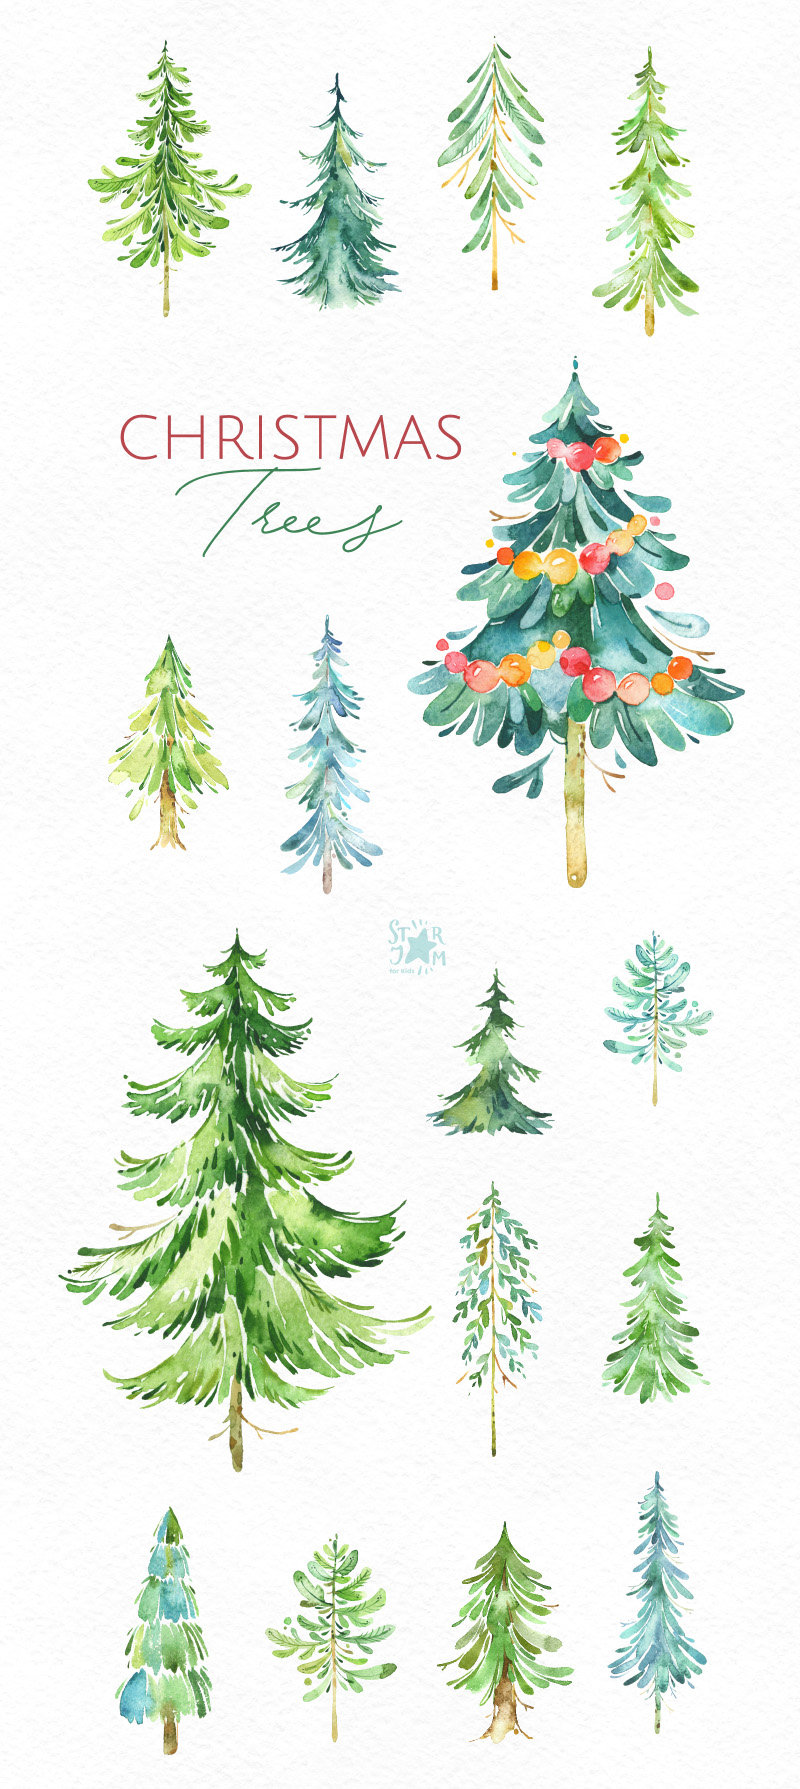 Christmas Trees 2 16 Watercolor Holiday Clipart Winter Etsy Christmas Tree Drawing Christmas Tree Painting Christmas Watercolor